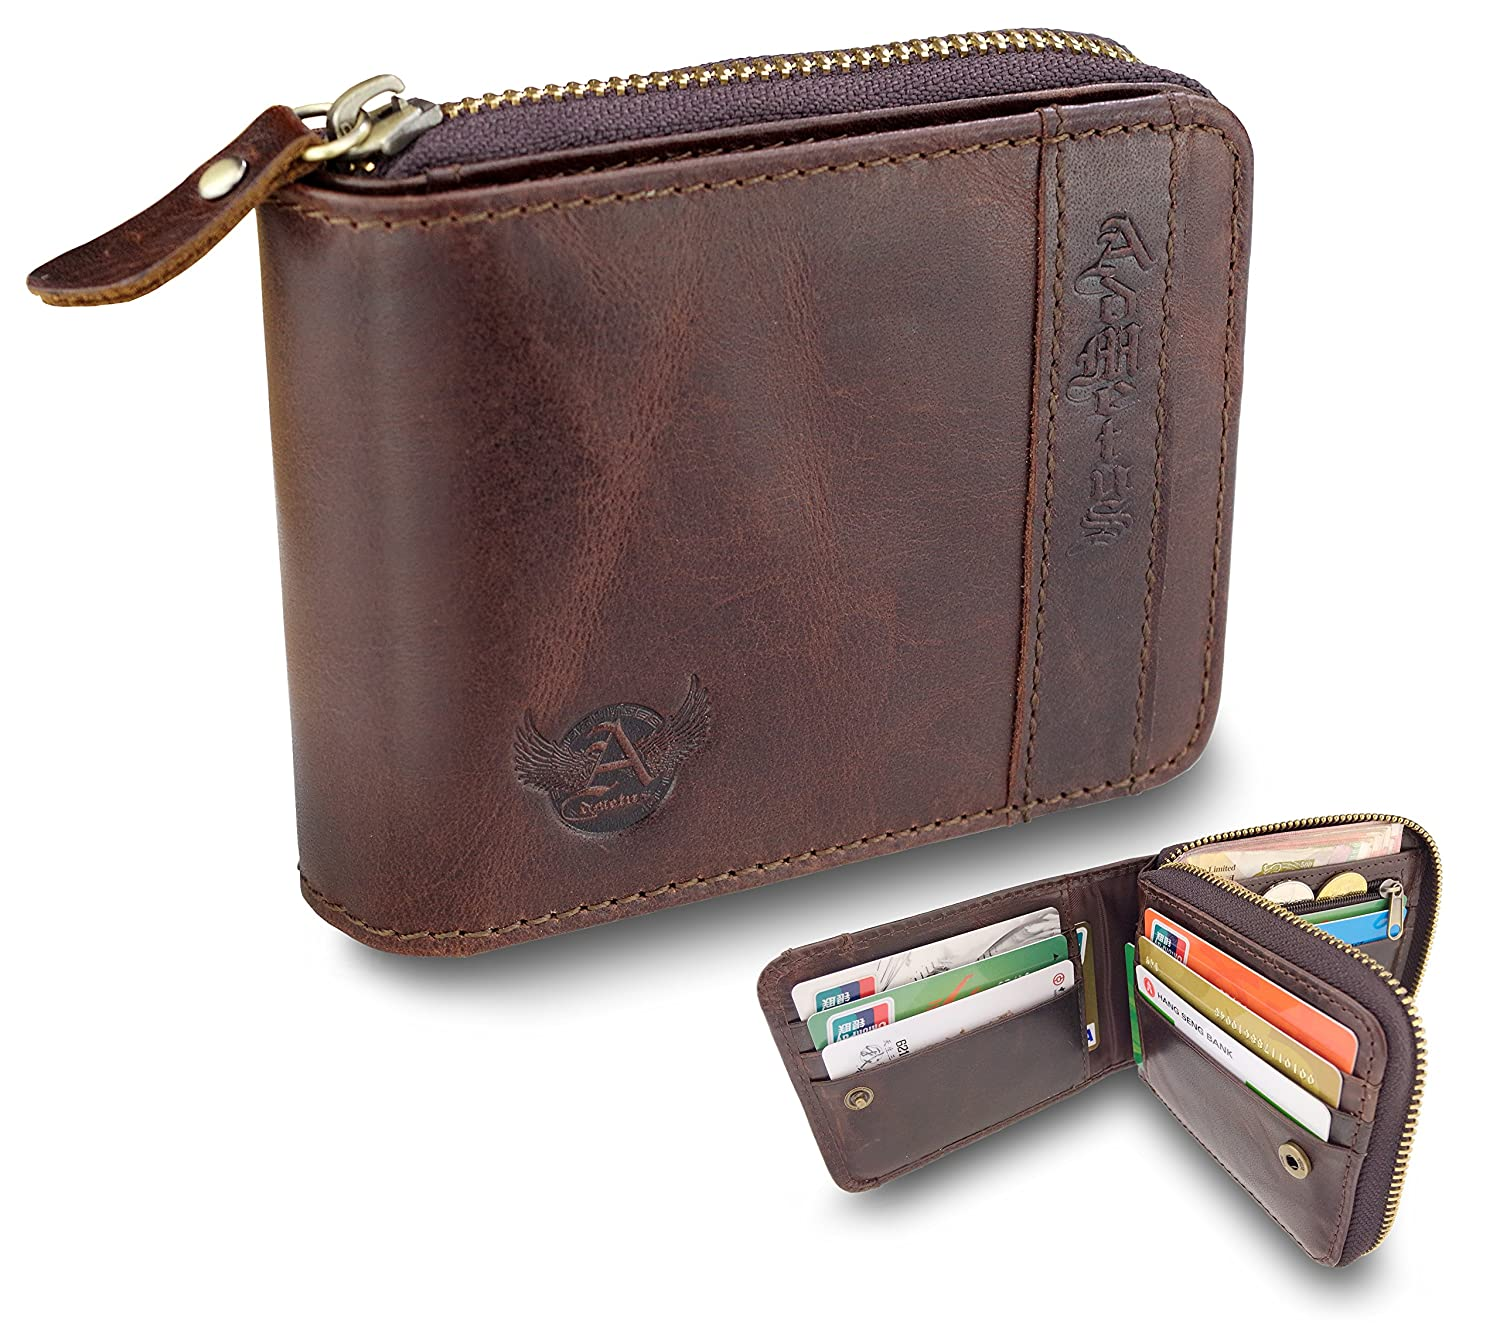 Admetus Genuine leather Zippered Bifold gifts for men wallet Exquisite gift box